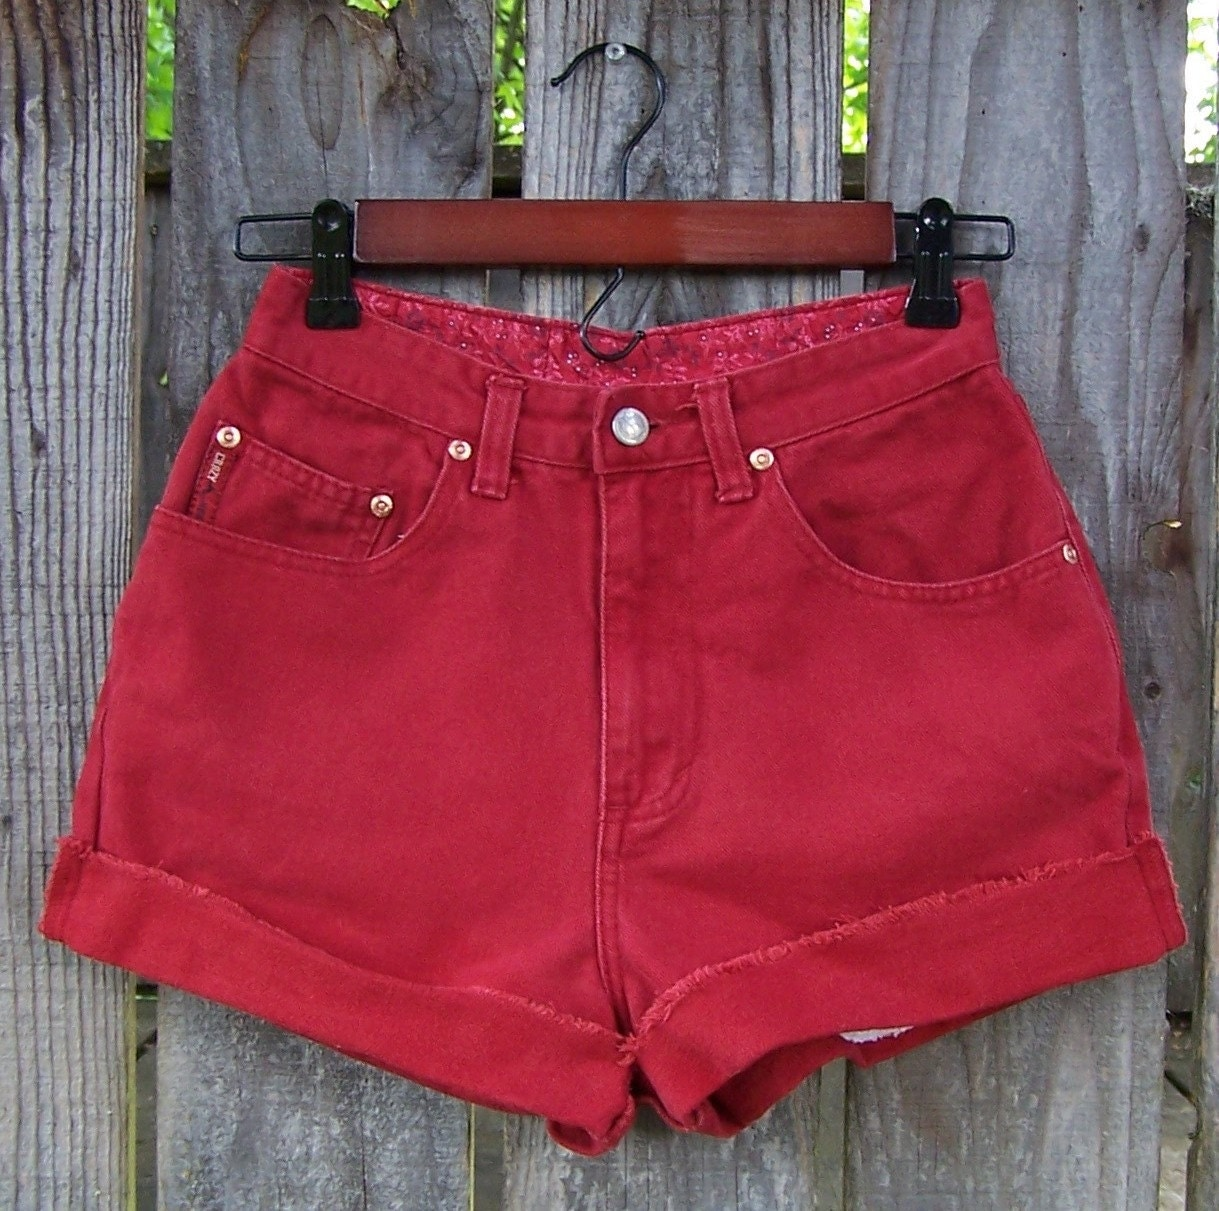 Red High Waisted Jean Shorts - Xtellar Jeans